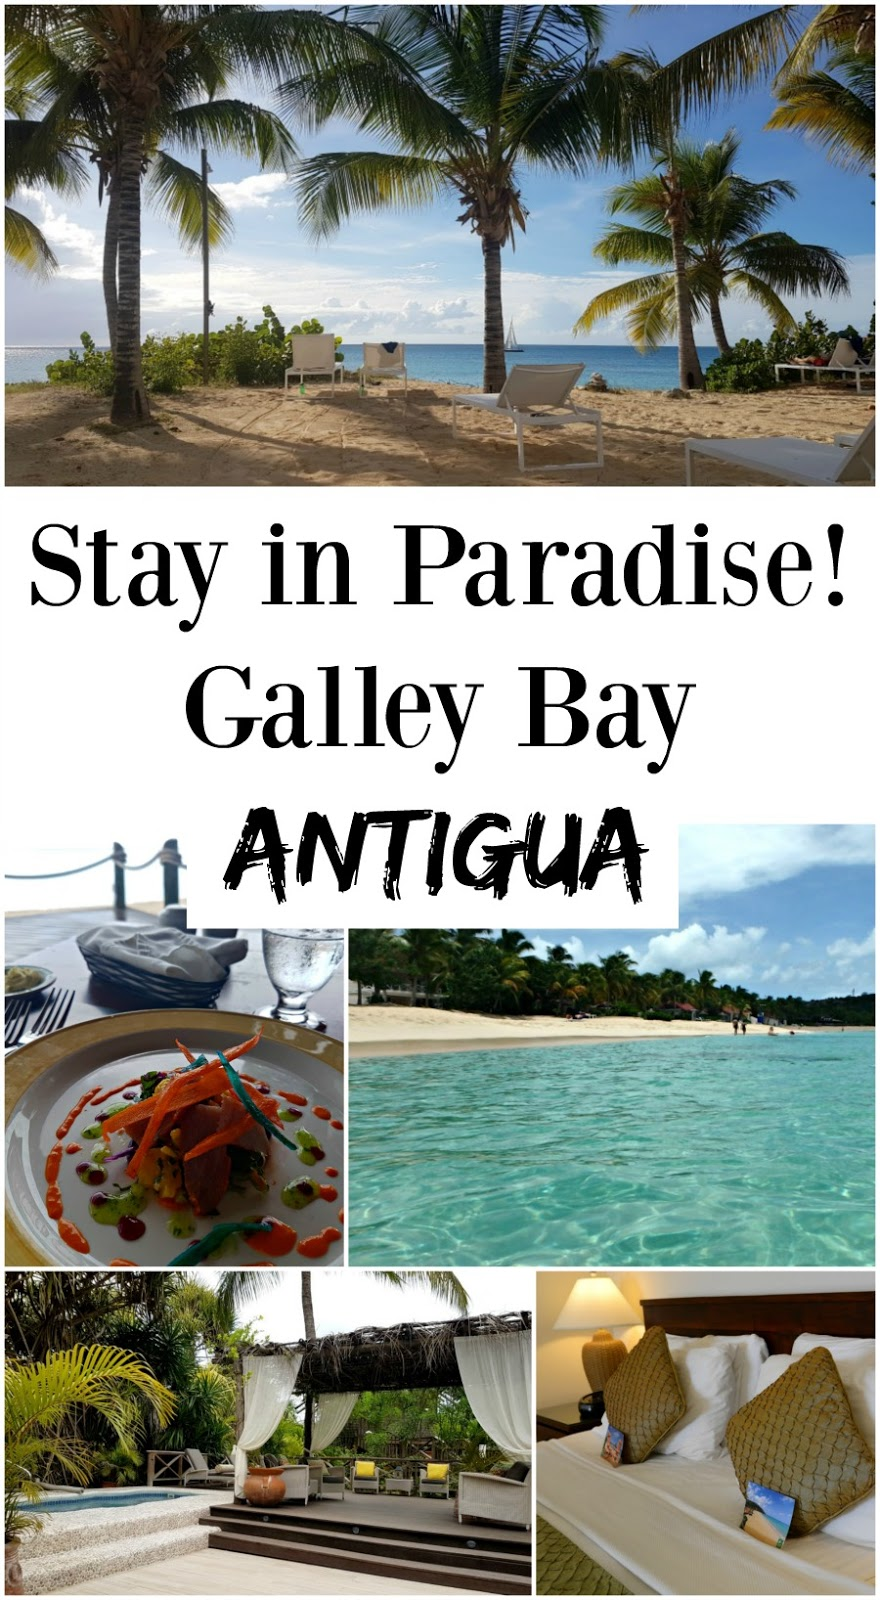 A review of luxury hotel, the Galley Bay Resort & Spa, on the Caribbean island of Antigua! A stunning adults-only hotel set in a secluded bay, it feels like an oasis in paradise.